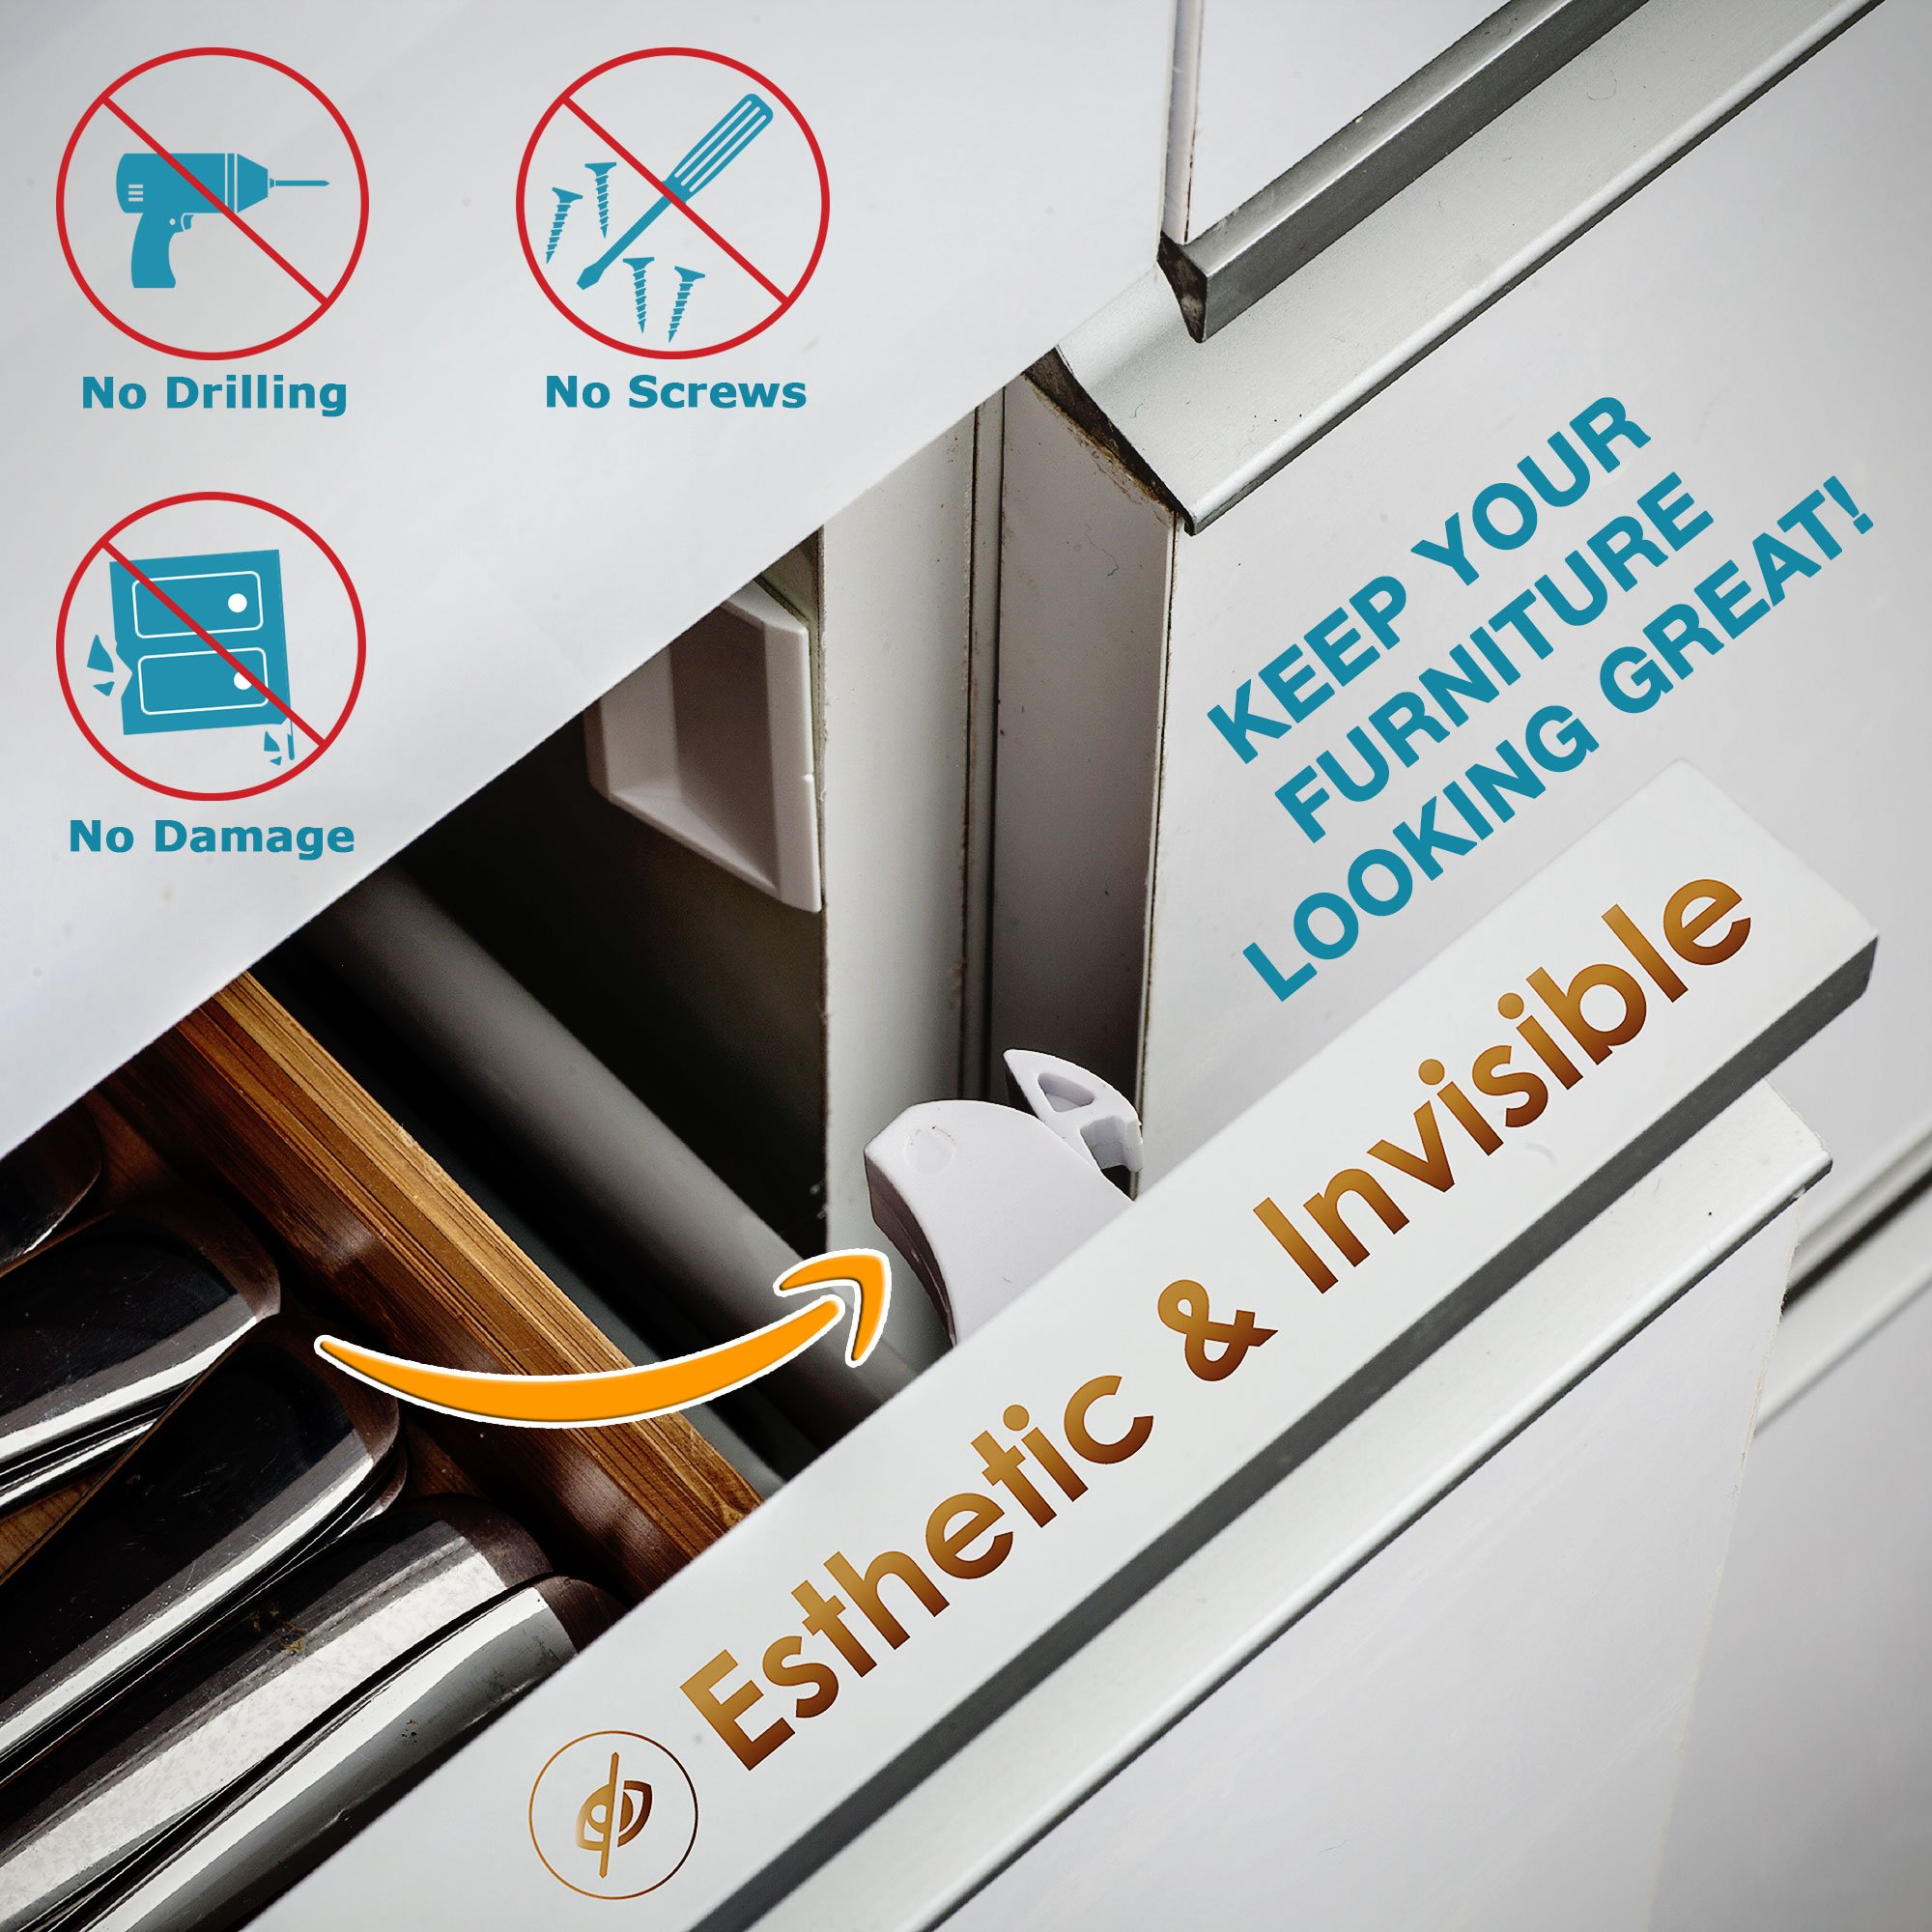 Invisible Magnetic No Drill Safety Lock: Keep Your Baby Safe! Secure Kitchen & Bedroom Cabinets & cupboards With 8 Child Proof Door & Drawer Locks for Kids & toddlers.2 Keys & 3M Adhesive Straps by MQP (Image #6)